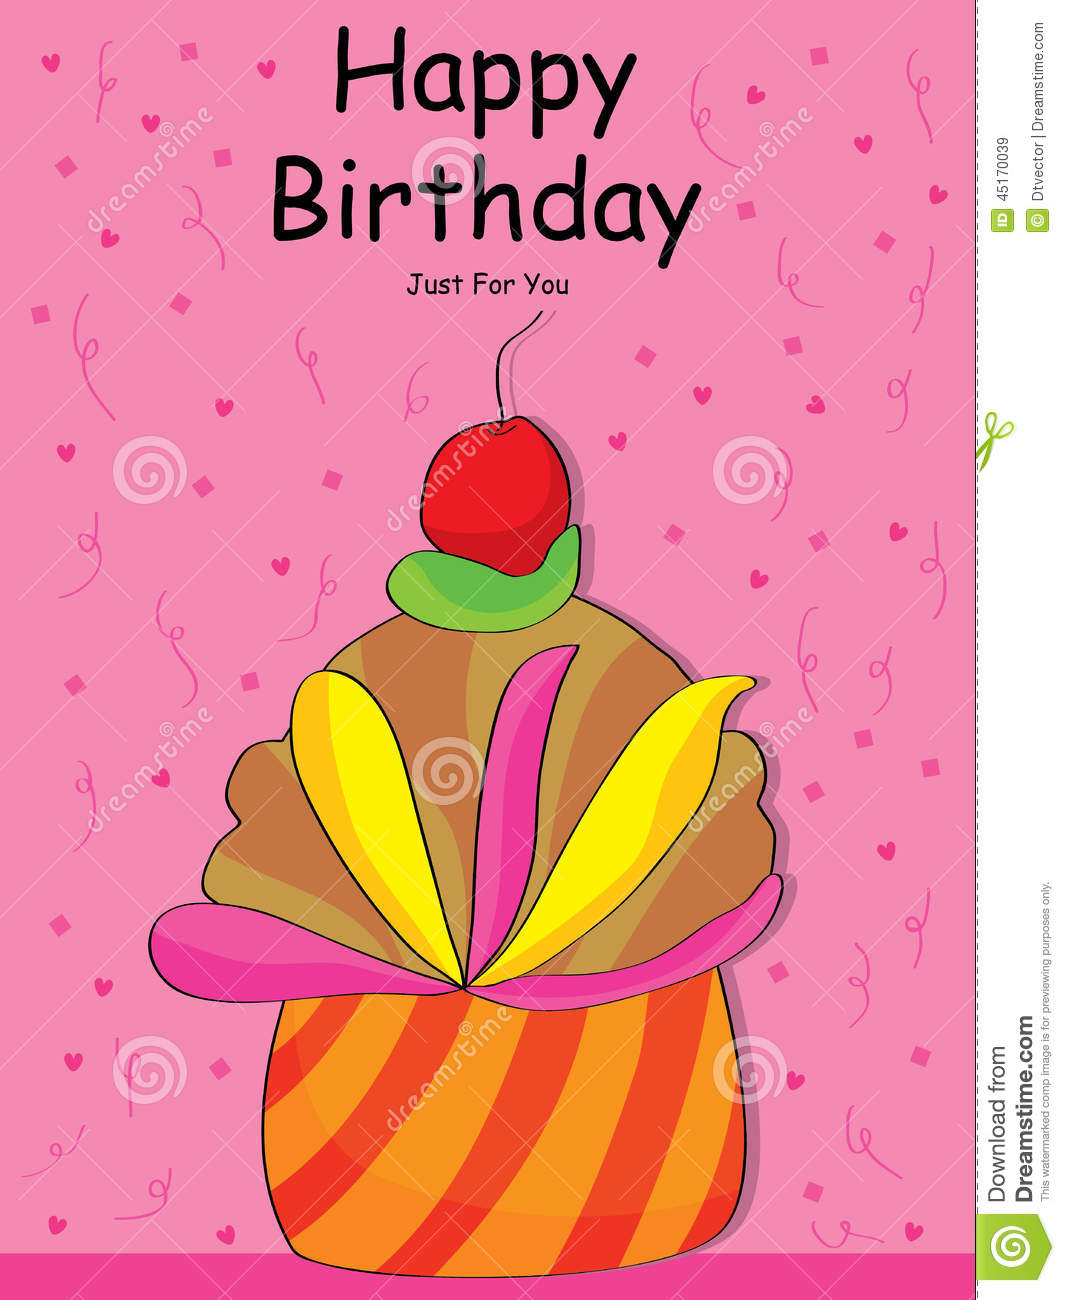 Stock Illustration Happy Birthday Special Cake Illustration Pink Background Image45170039 on Missing Numbers Clipart